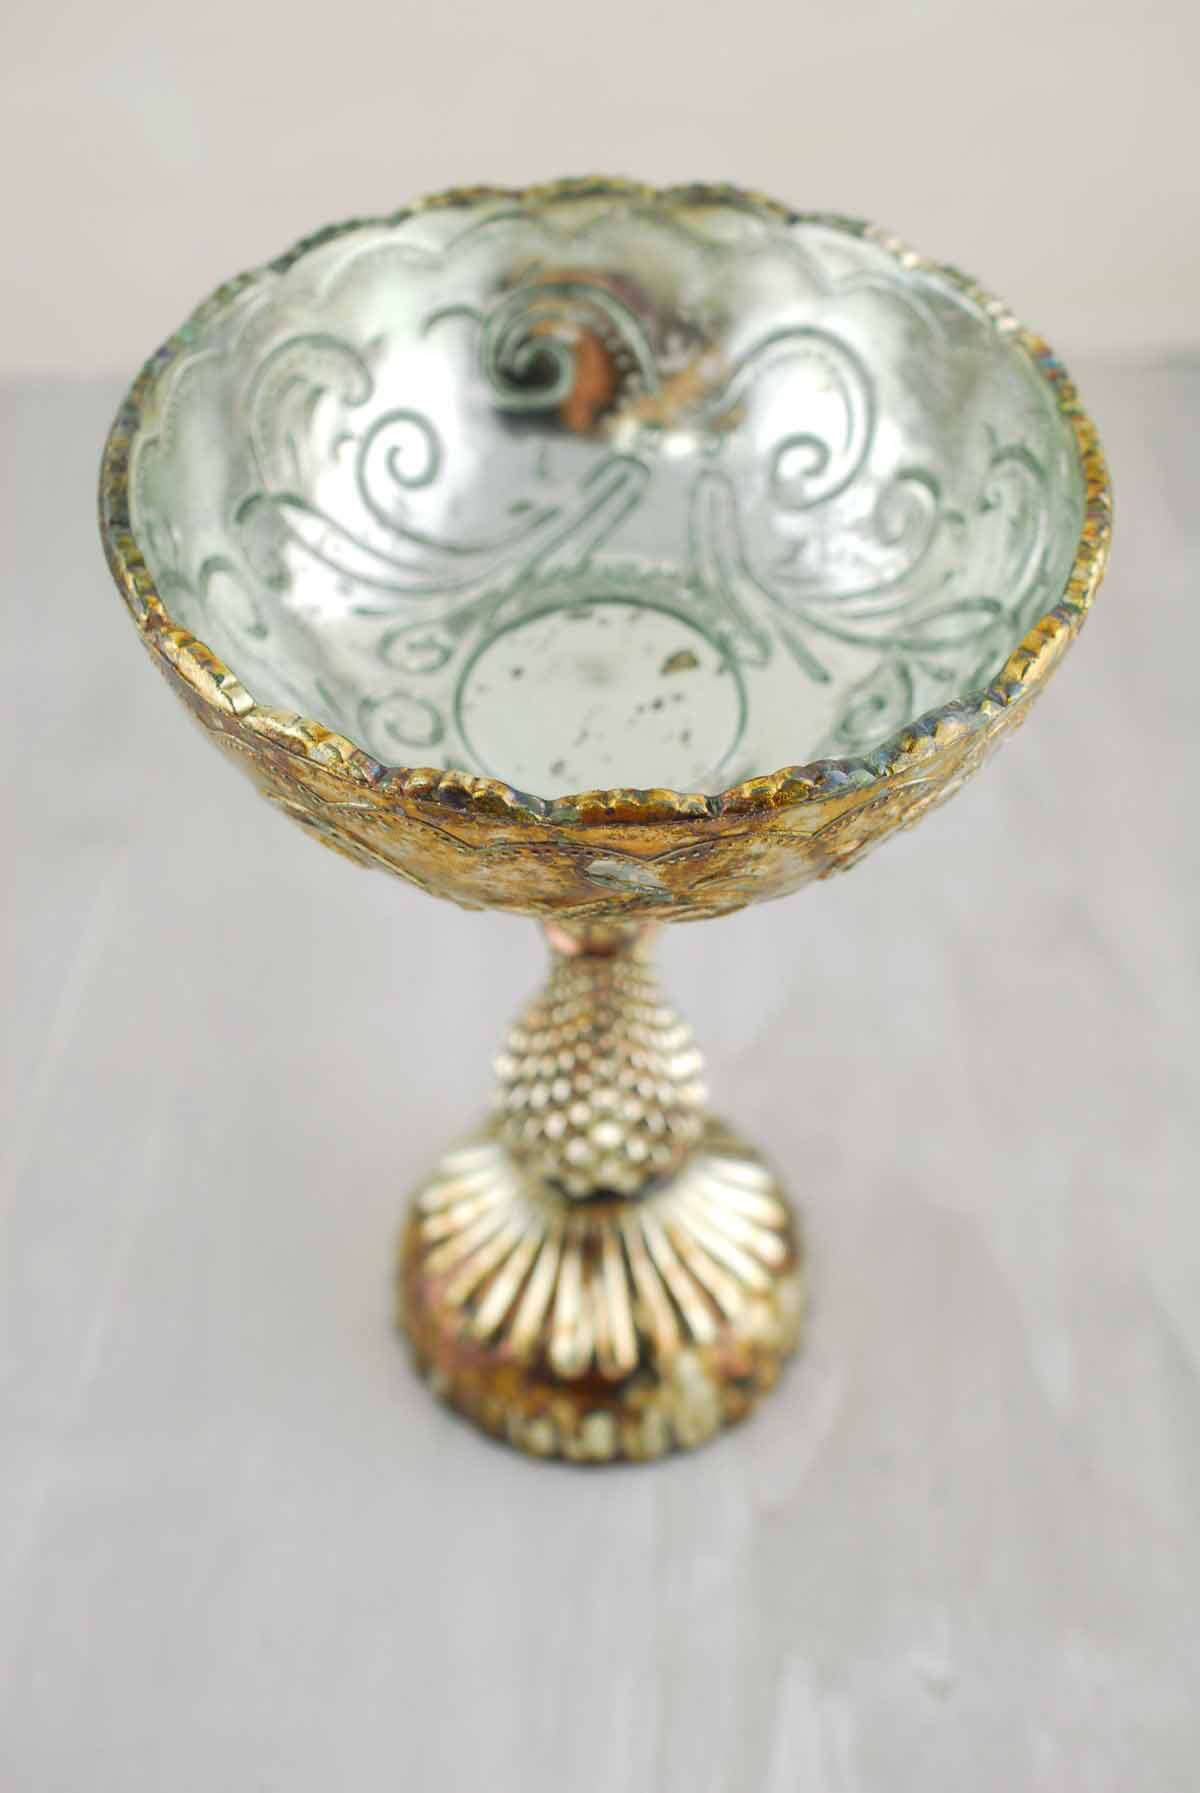 Mercury Glass Fairytale Compote 6x8.5in